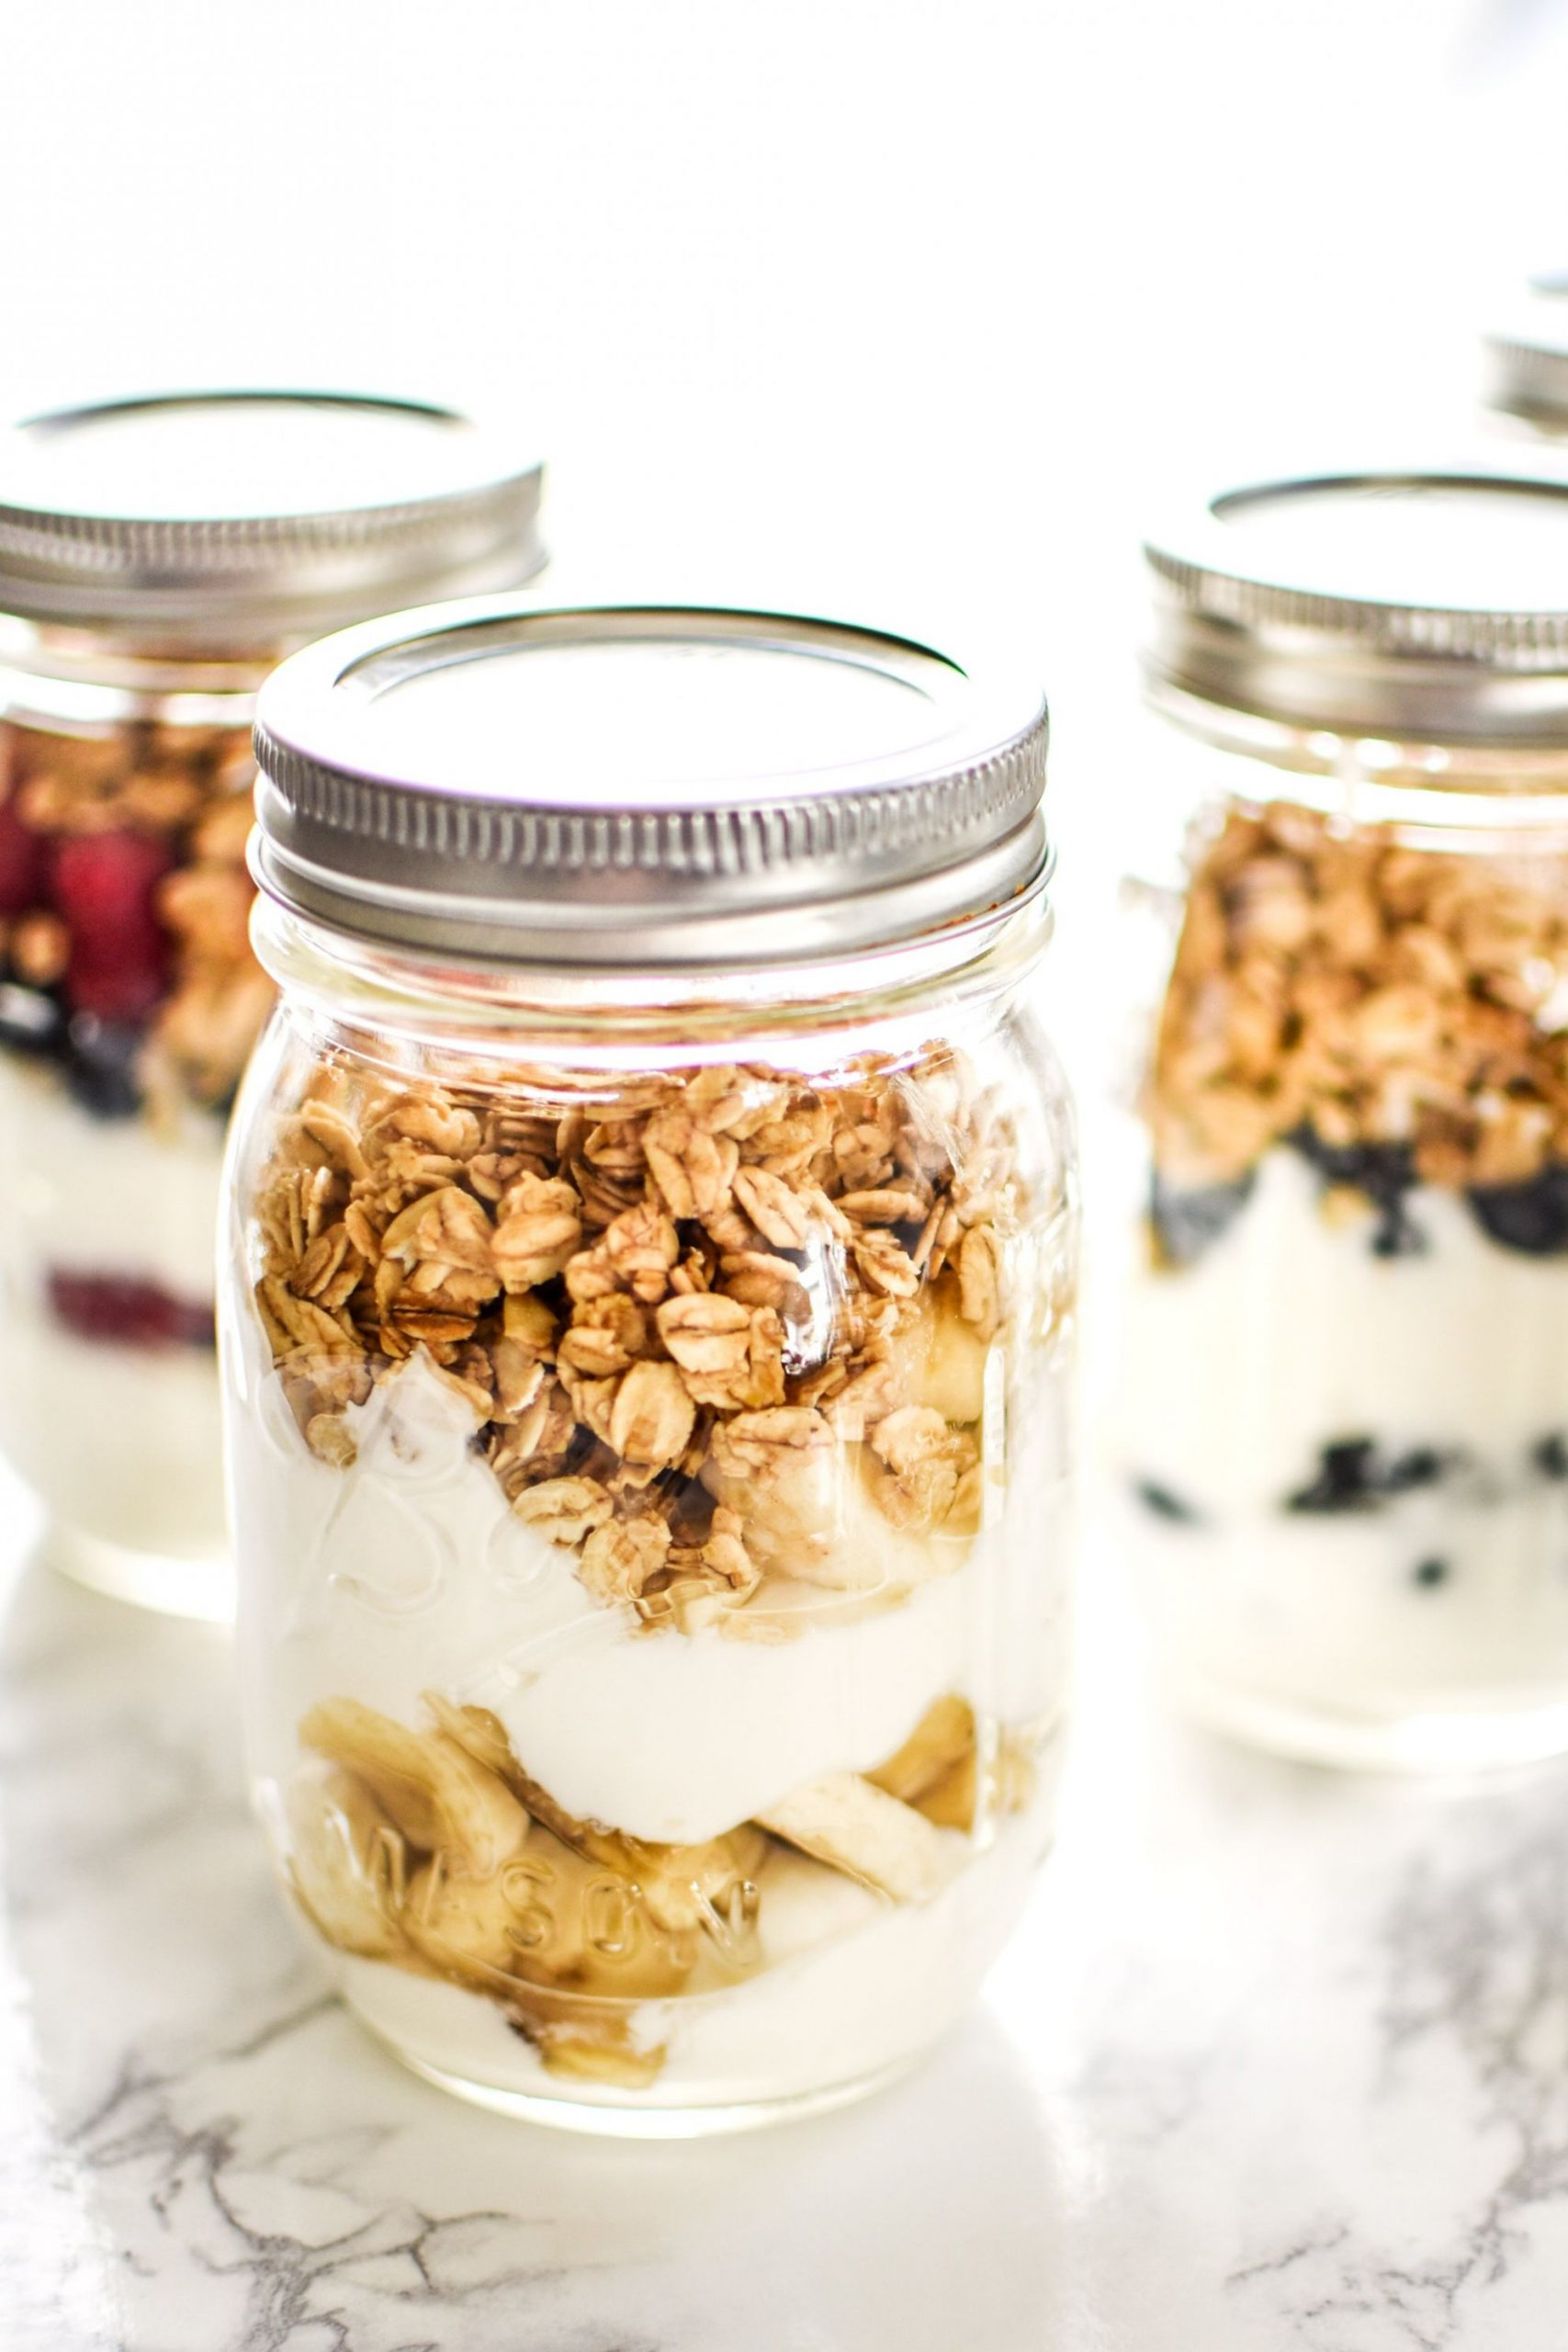 9 Make-Ahead Fruit & Greek Yogurt Parfait Ideas to Try for Breakfast